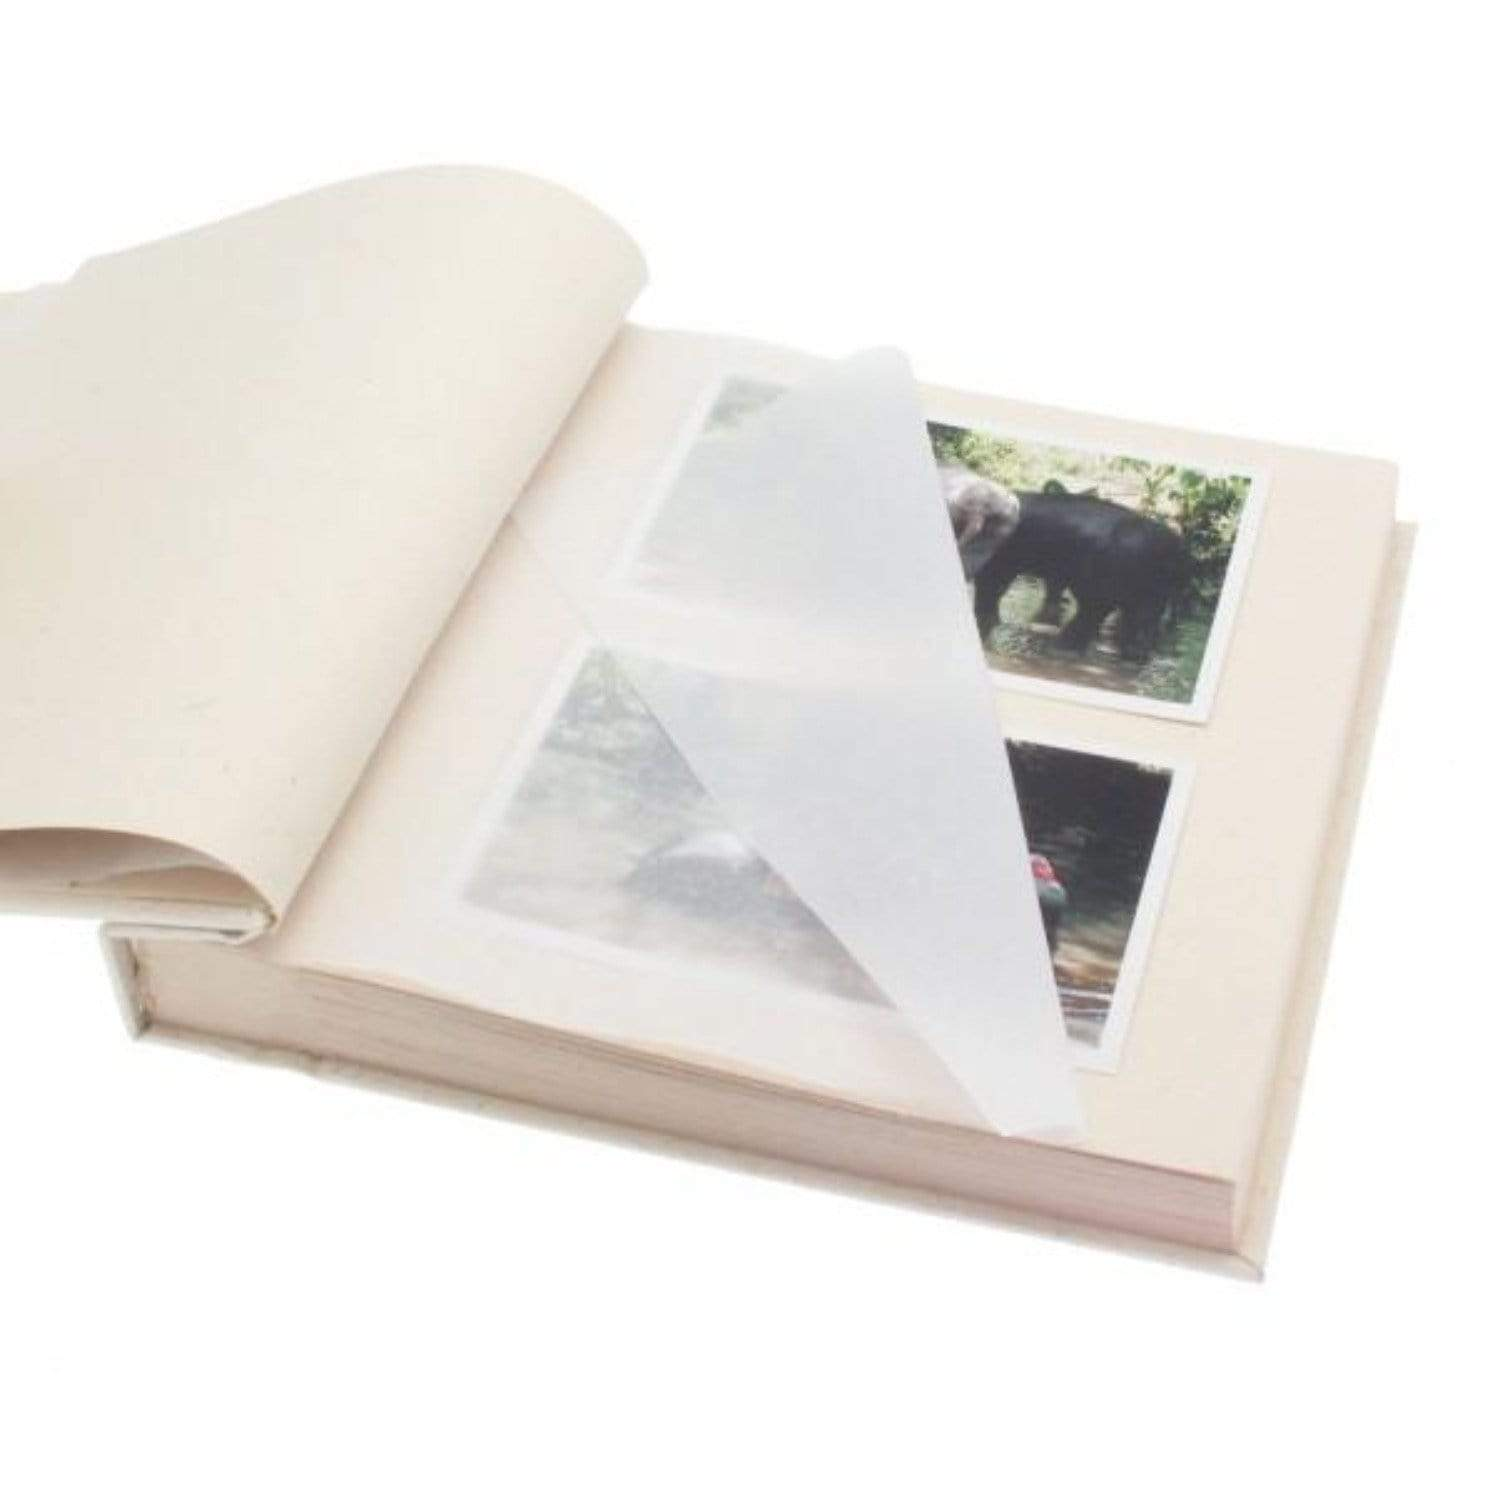 Medium photo album in sustainable certified elephant dung paper detail